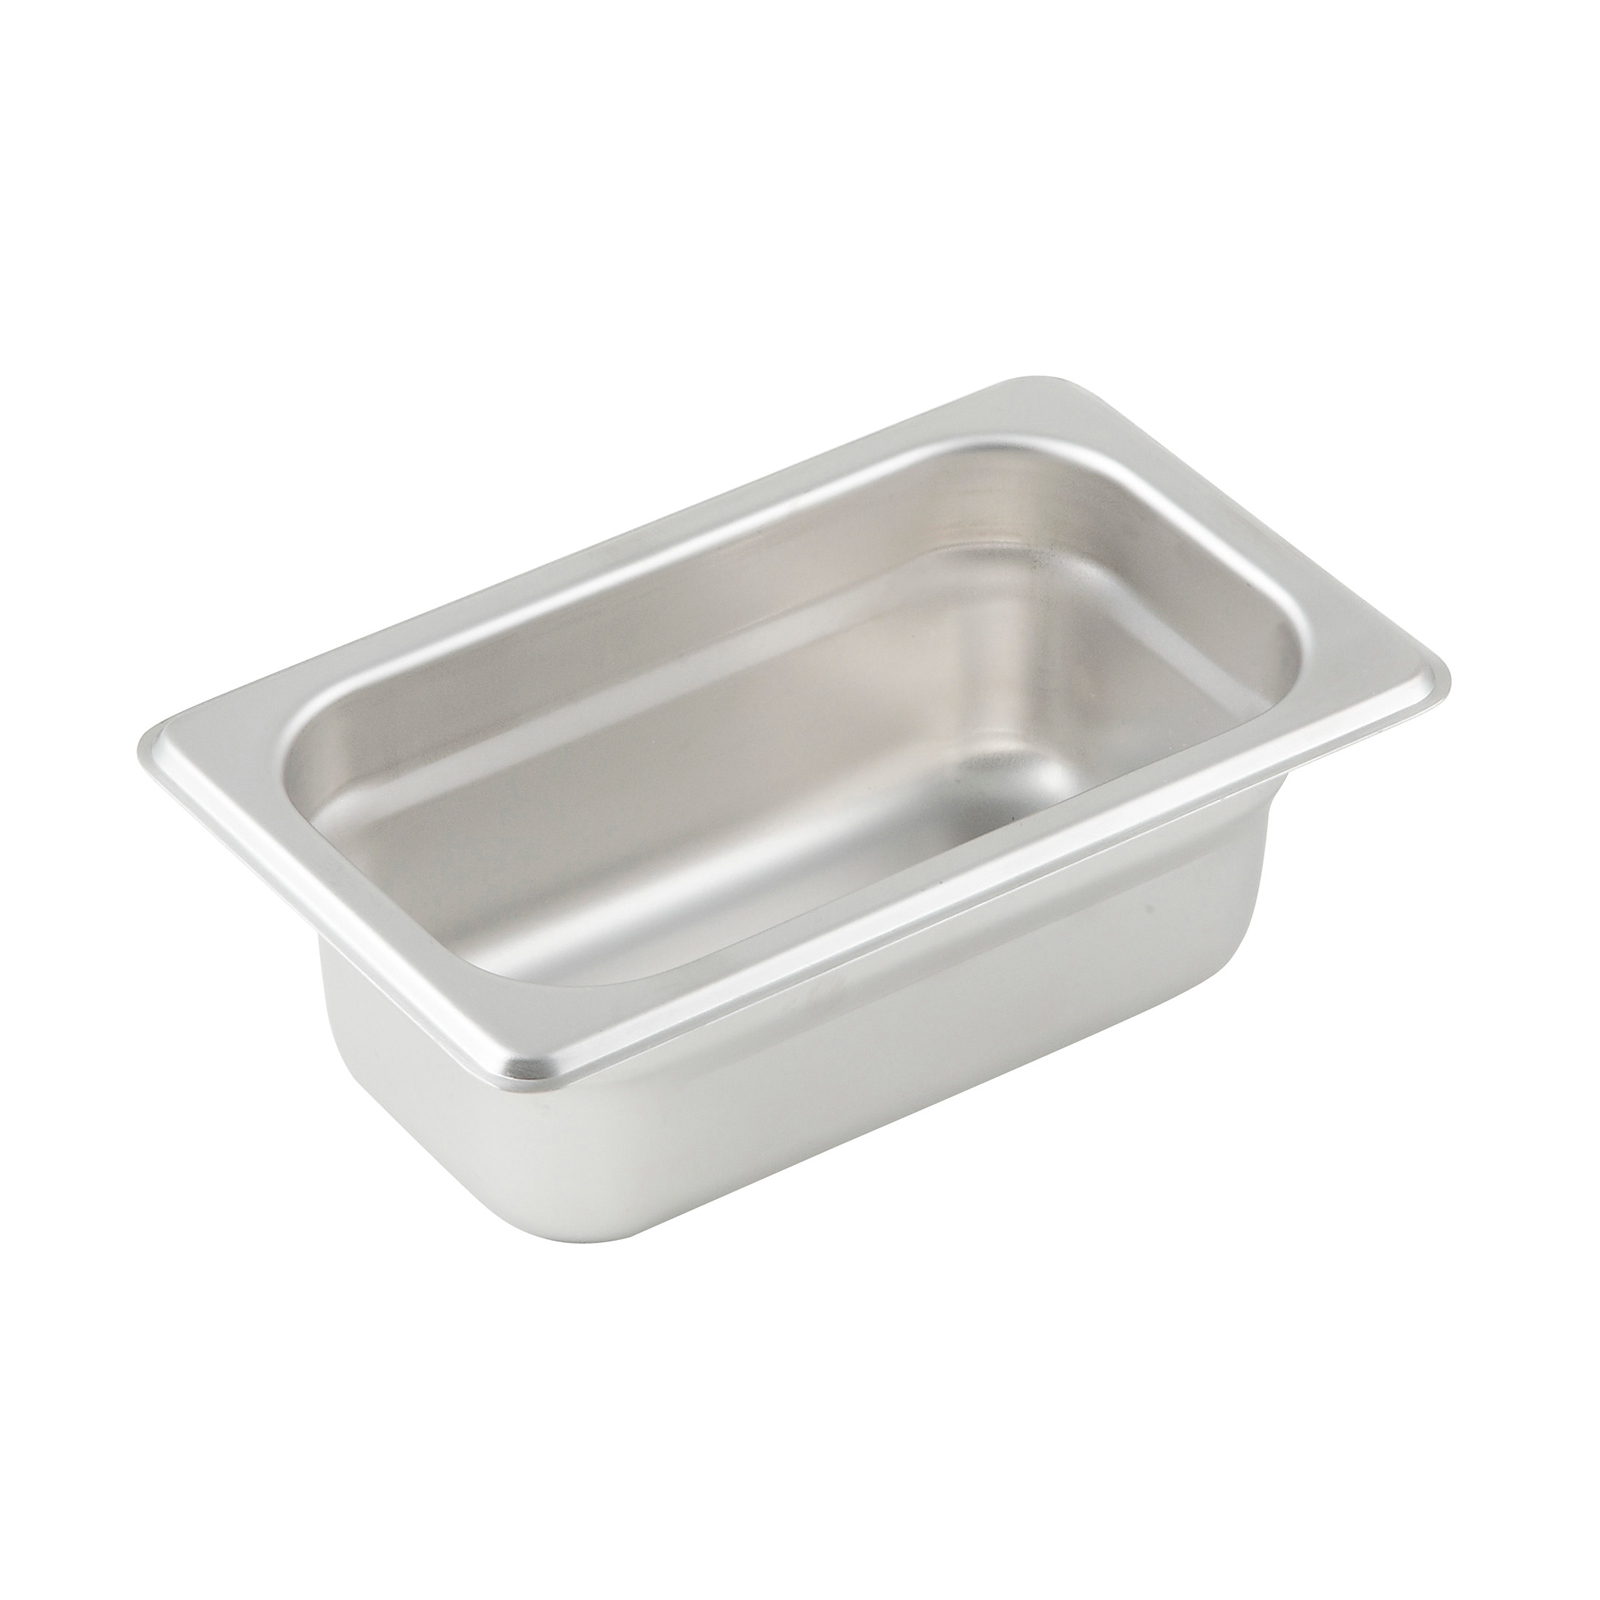 Winco SPJP-902 steam table pan, stainless steel